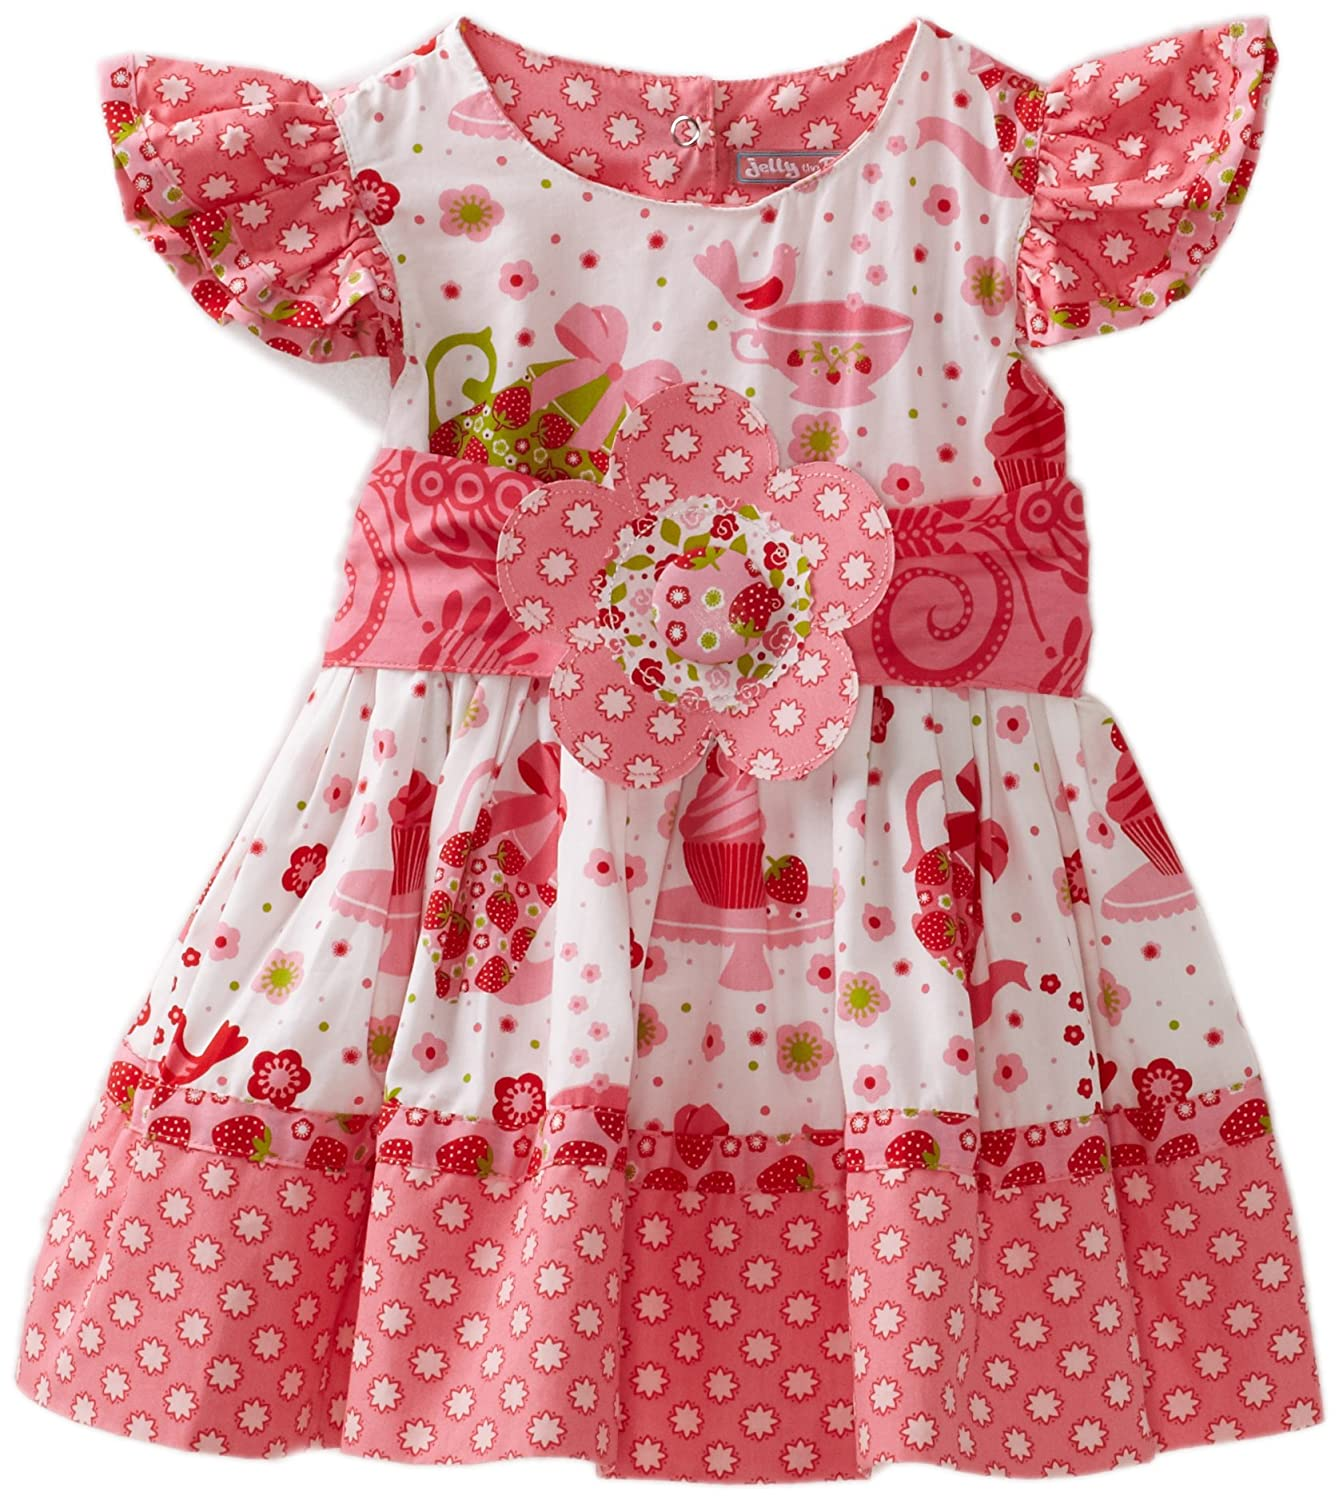 Baby Girl Dresses. She'll be pretty as a princess in baby girl dresses from Kohl's. Perfect for any formal occasion, baby dresses are essential for your little one's wardrobe.